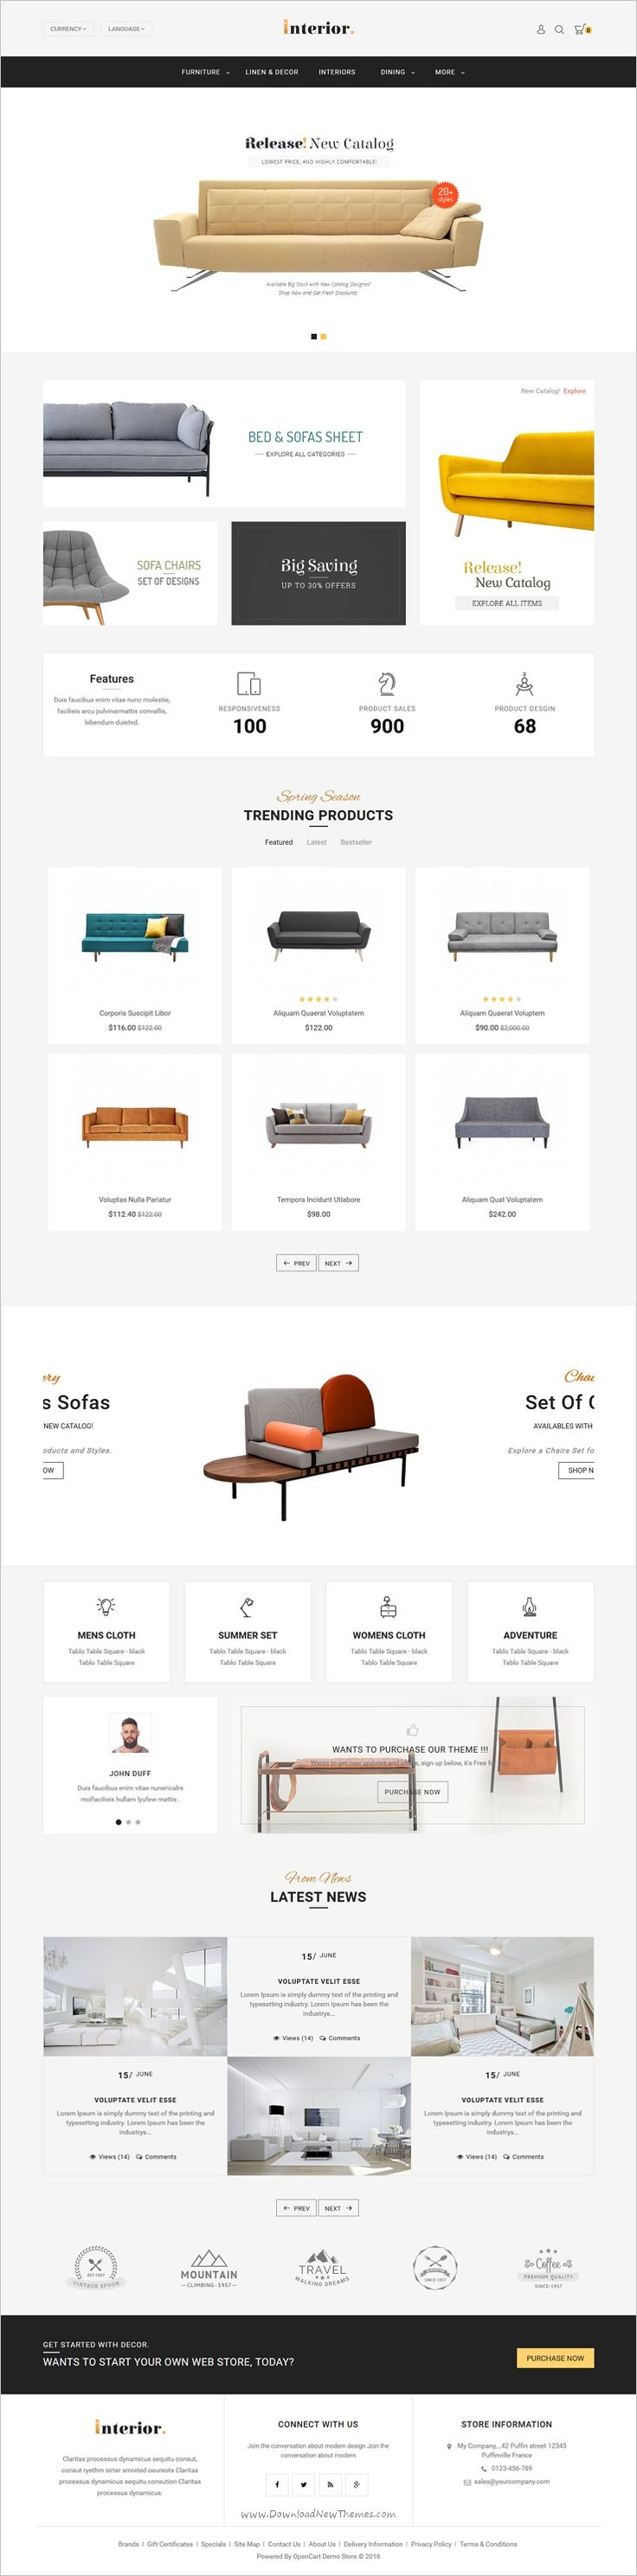 Interior store is beautifully design #Opencart theme for creative #sofa #furniture #shop eCommerce website with 8 multipurpose homepage layouts download now➯ https://themeforest.net/item/interior-opencart-multi-purpose-responsive-theme/17089911?ref=Datasata